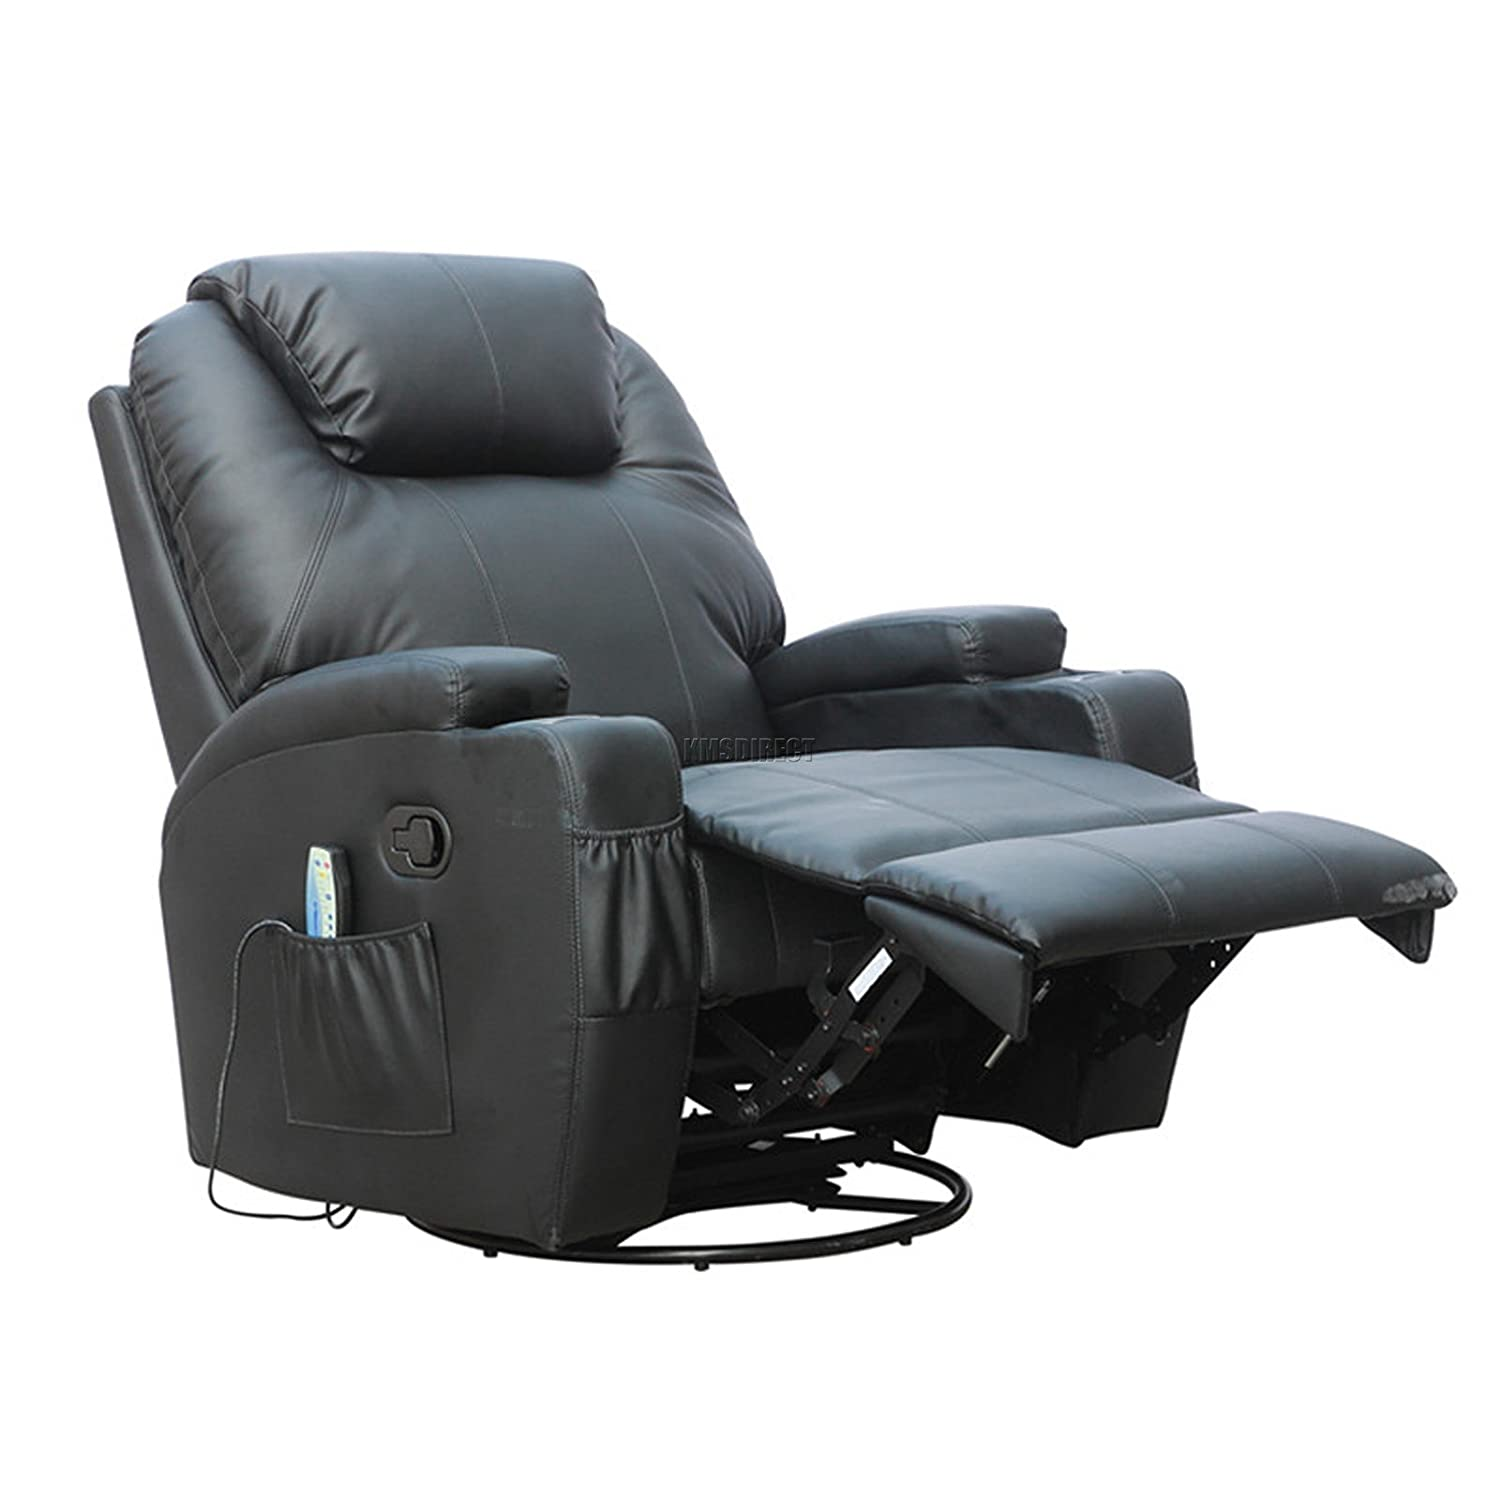 most design recliner patio designing cheap reclining gallery creative chairs inspiration ideas with on fabulous interior home chair